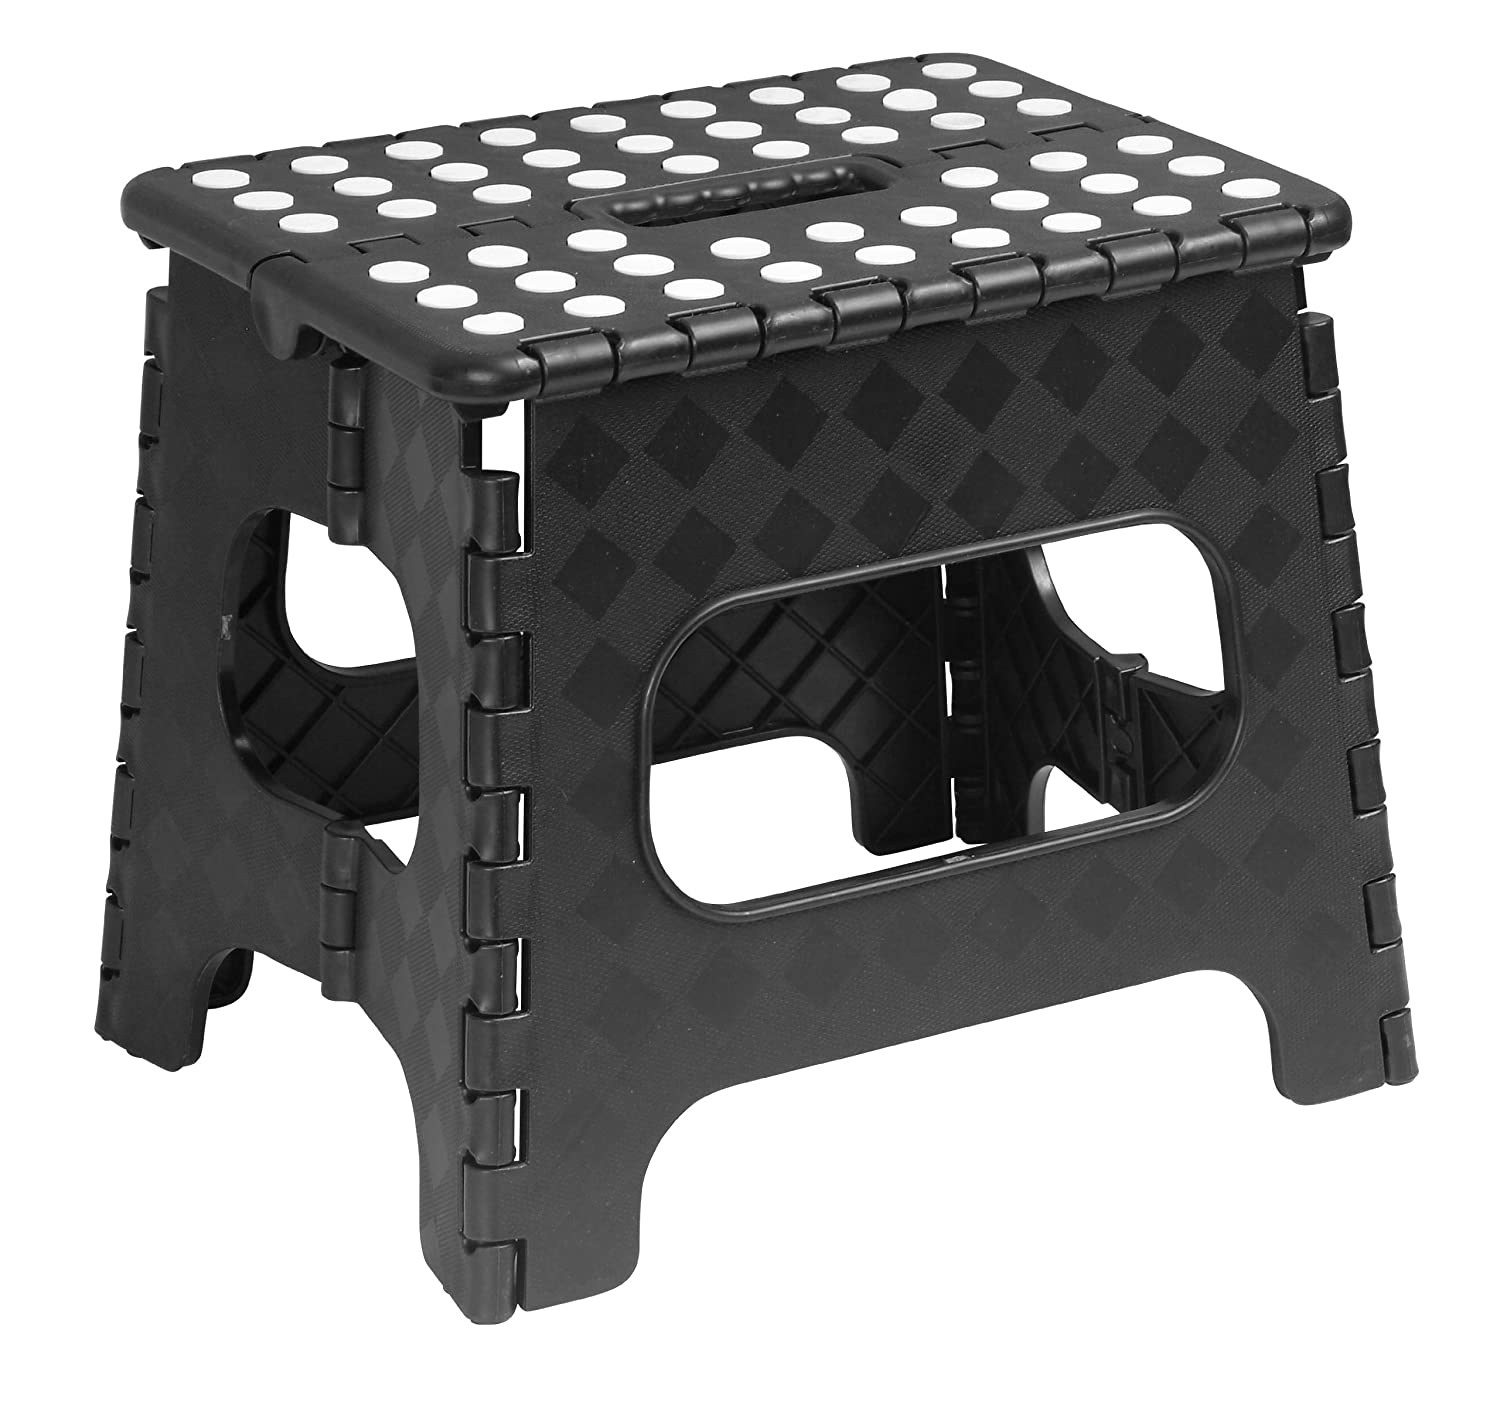 Superior Folding Step Stool with Dots 11 Inch Black Superior Performance Inc 254BK